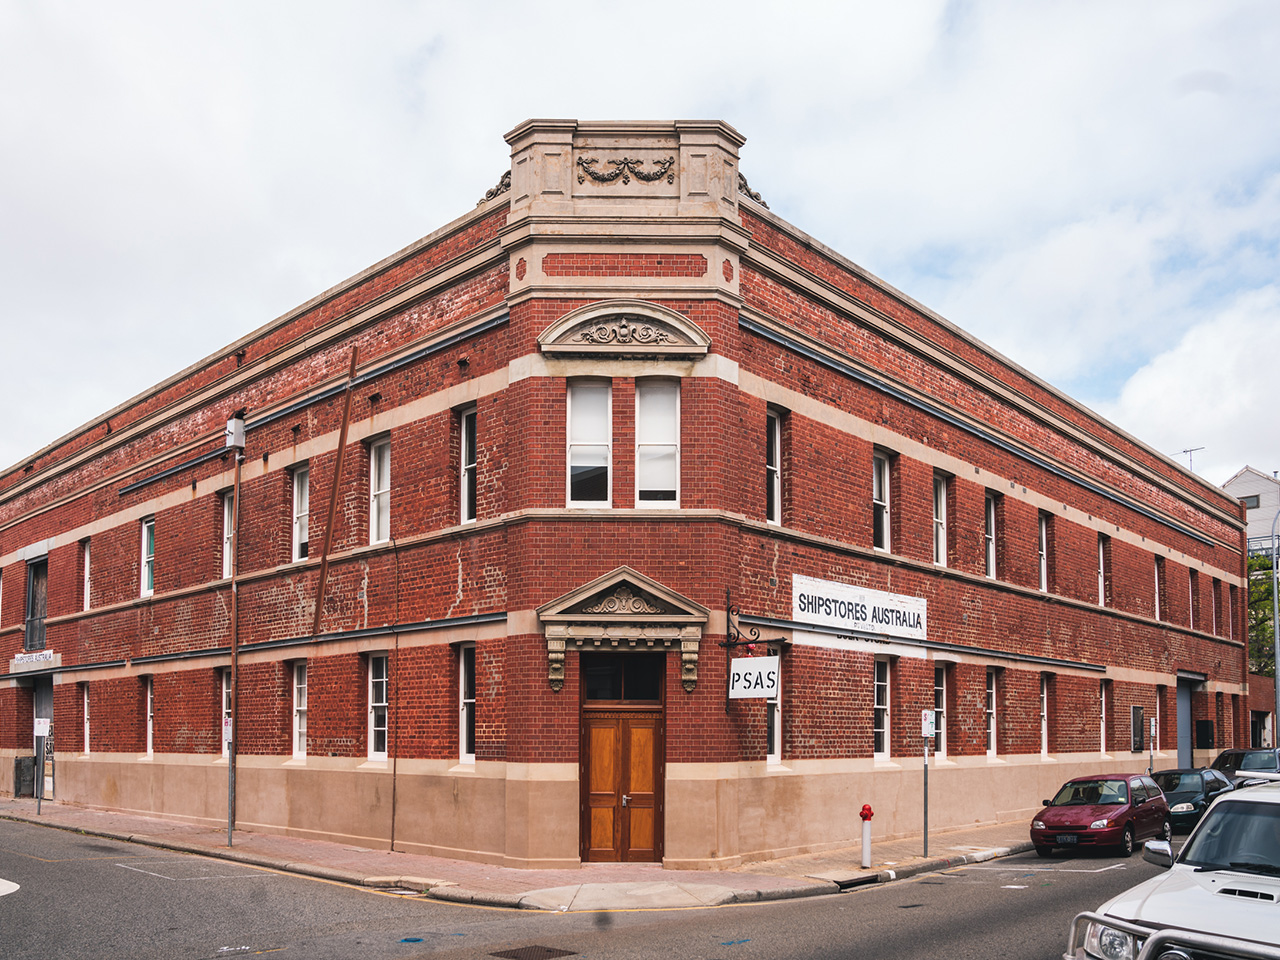 Outside View Of The Blank Canvas Venue Building